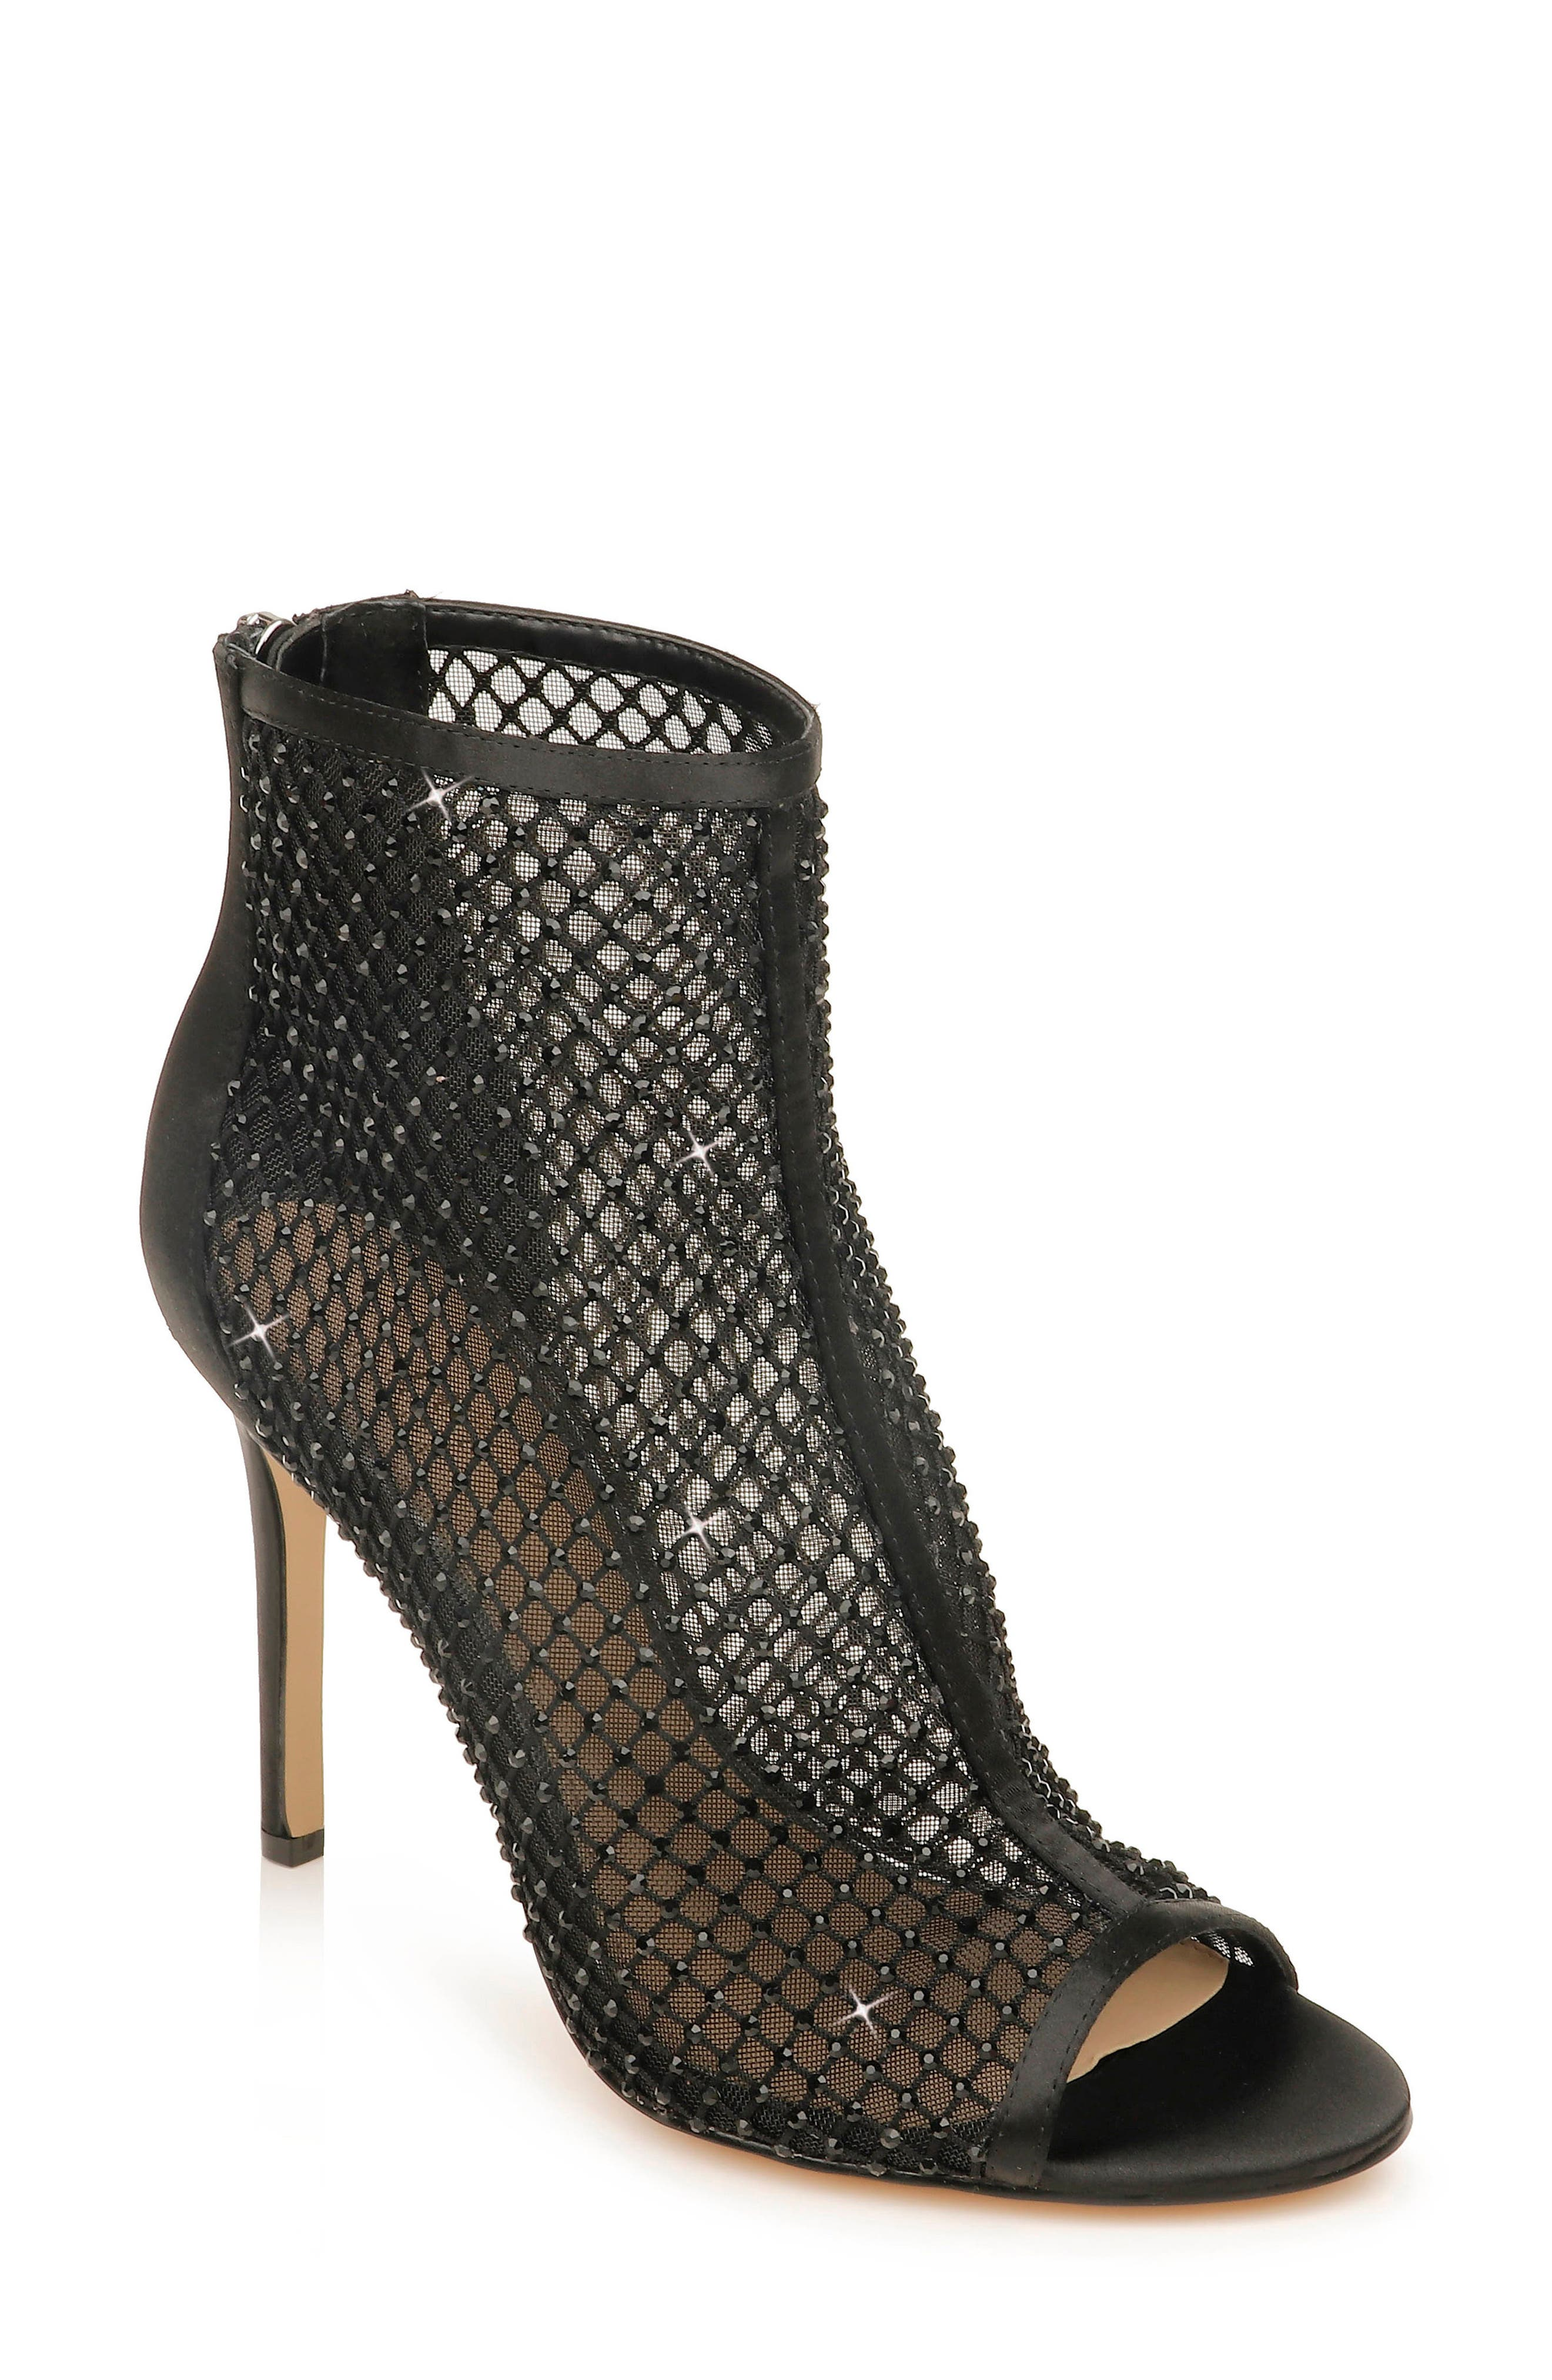 Glittering crystals dazzle on a sultry mesh-and-satin bootie styled with a flirty peep toe and towering stiletto heel. Style Name: Jewel Badgley Mischka Fiorella Mesh Bootie (Women). Style Number: 6068846. Available in stores.